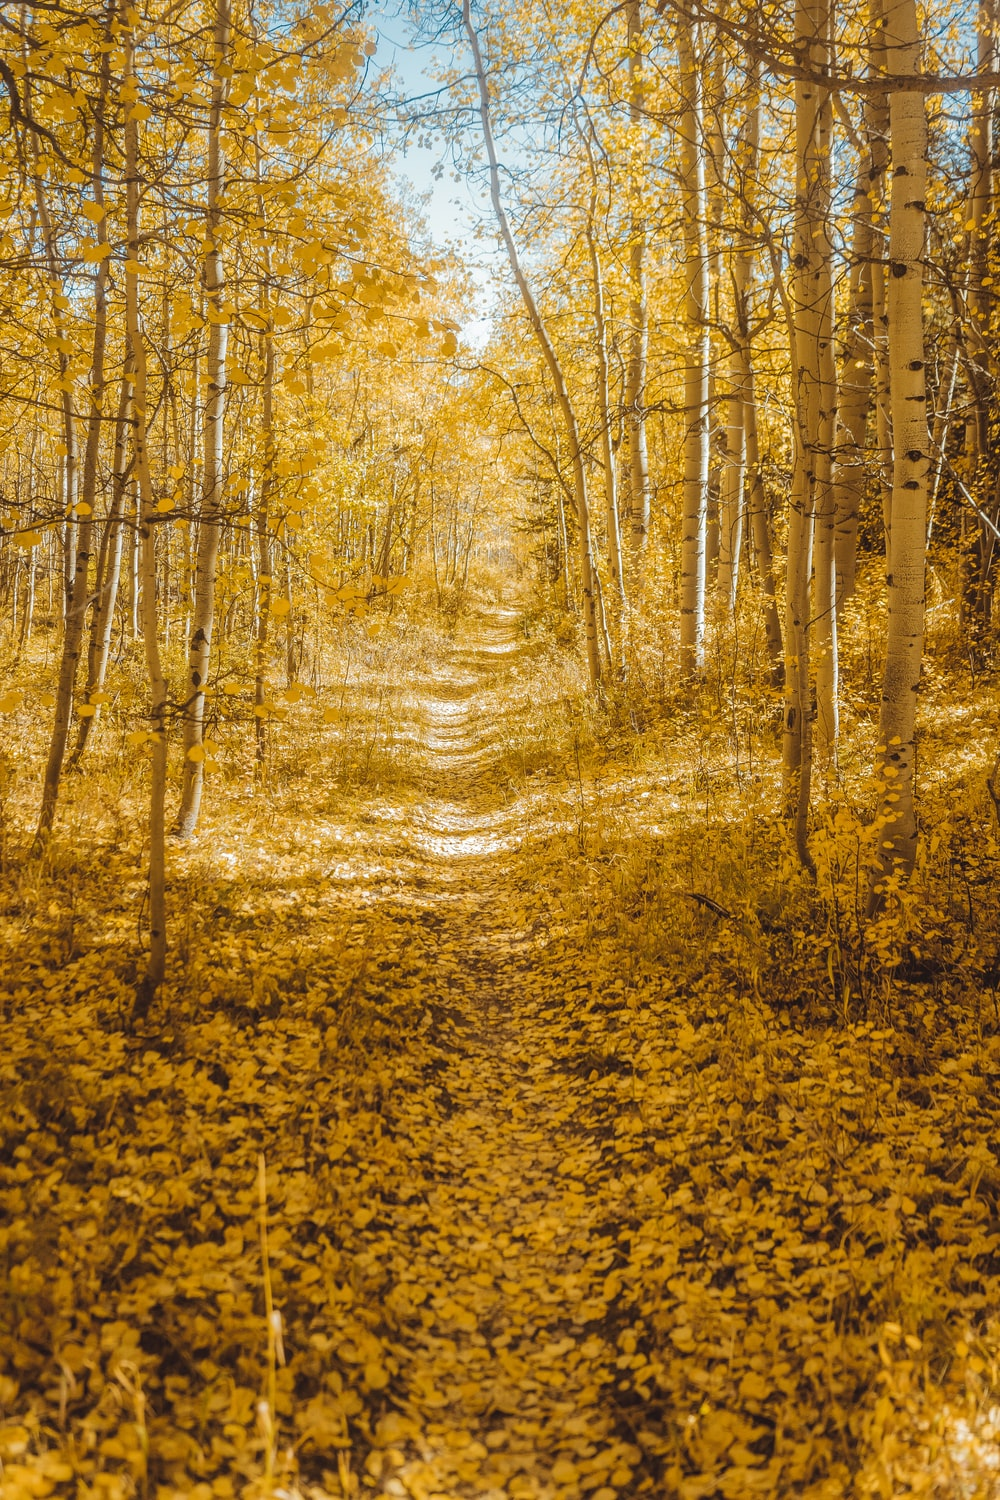 road surrounded with yellow trees under blue and white sky